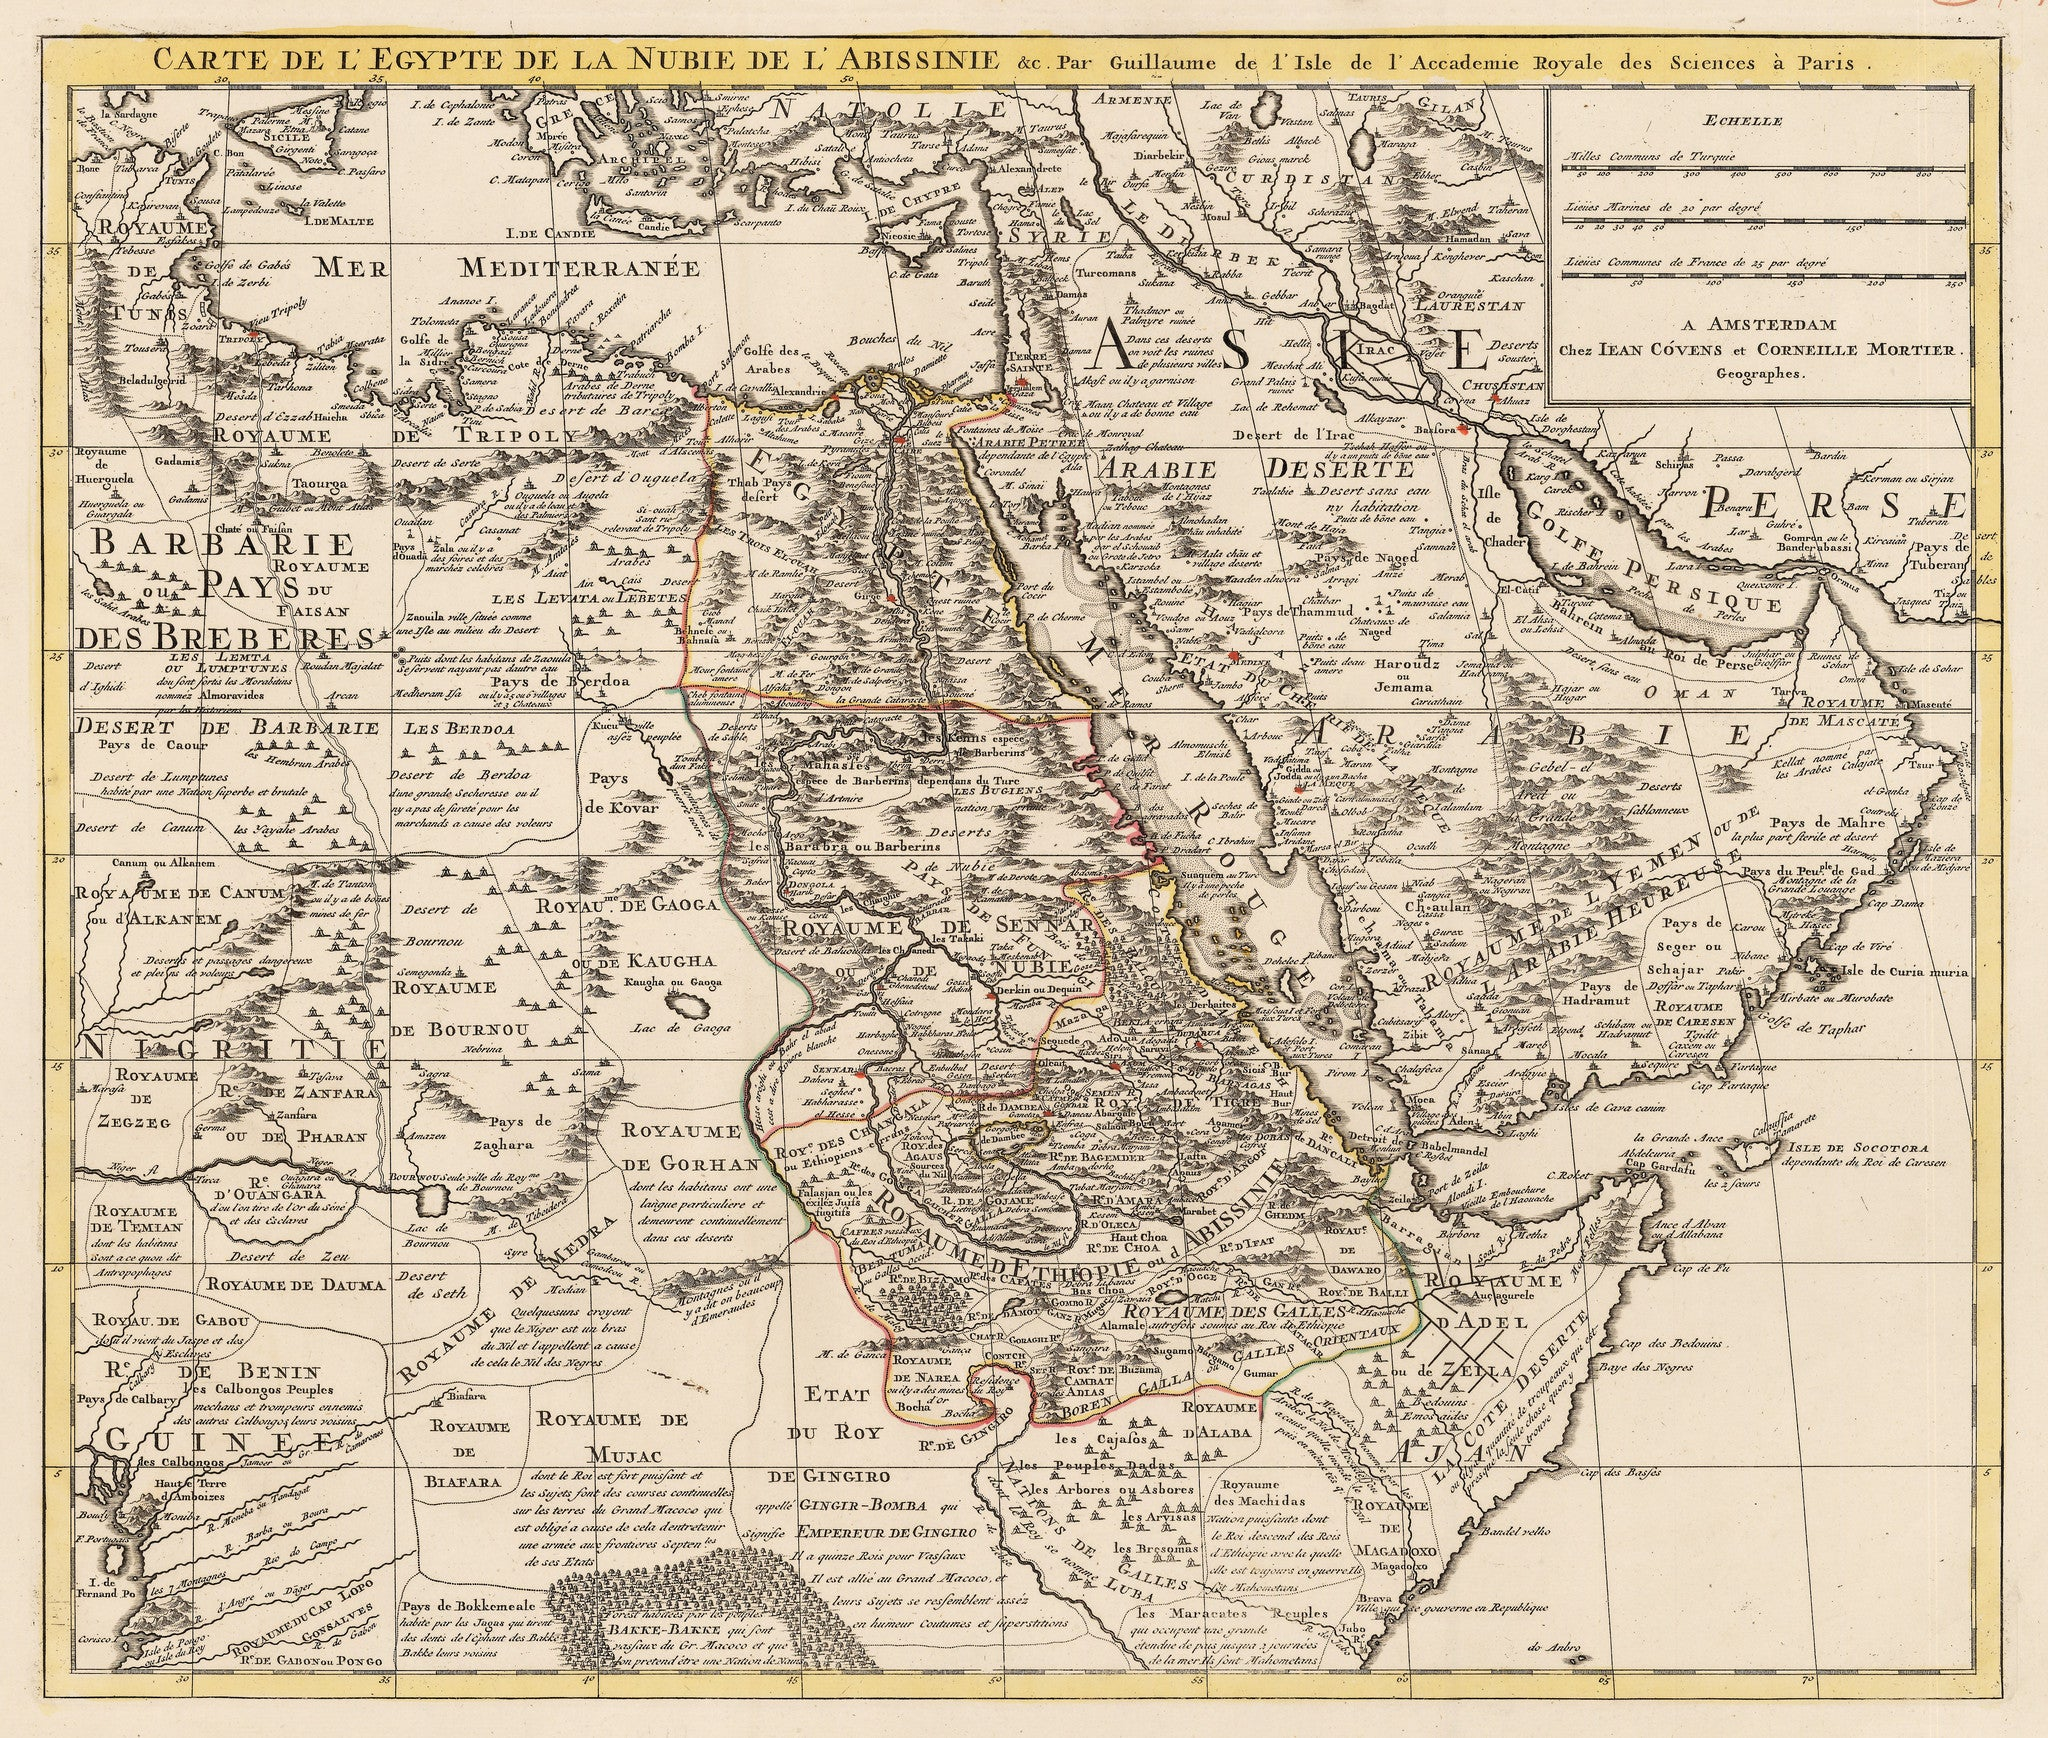 Authentic Antique Map of Nubia, Egypt, Abyssinia, and Arabia: Carte de l'Egypte, de la Nubie, de l'Abissinie &c. Par Guillaume de l'Isle de l'Academie Royale des Sciences a Paris. By: Covens & Mortier Date: 1730 (circa) Paris